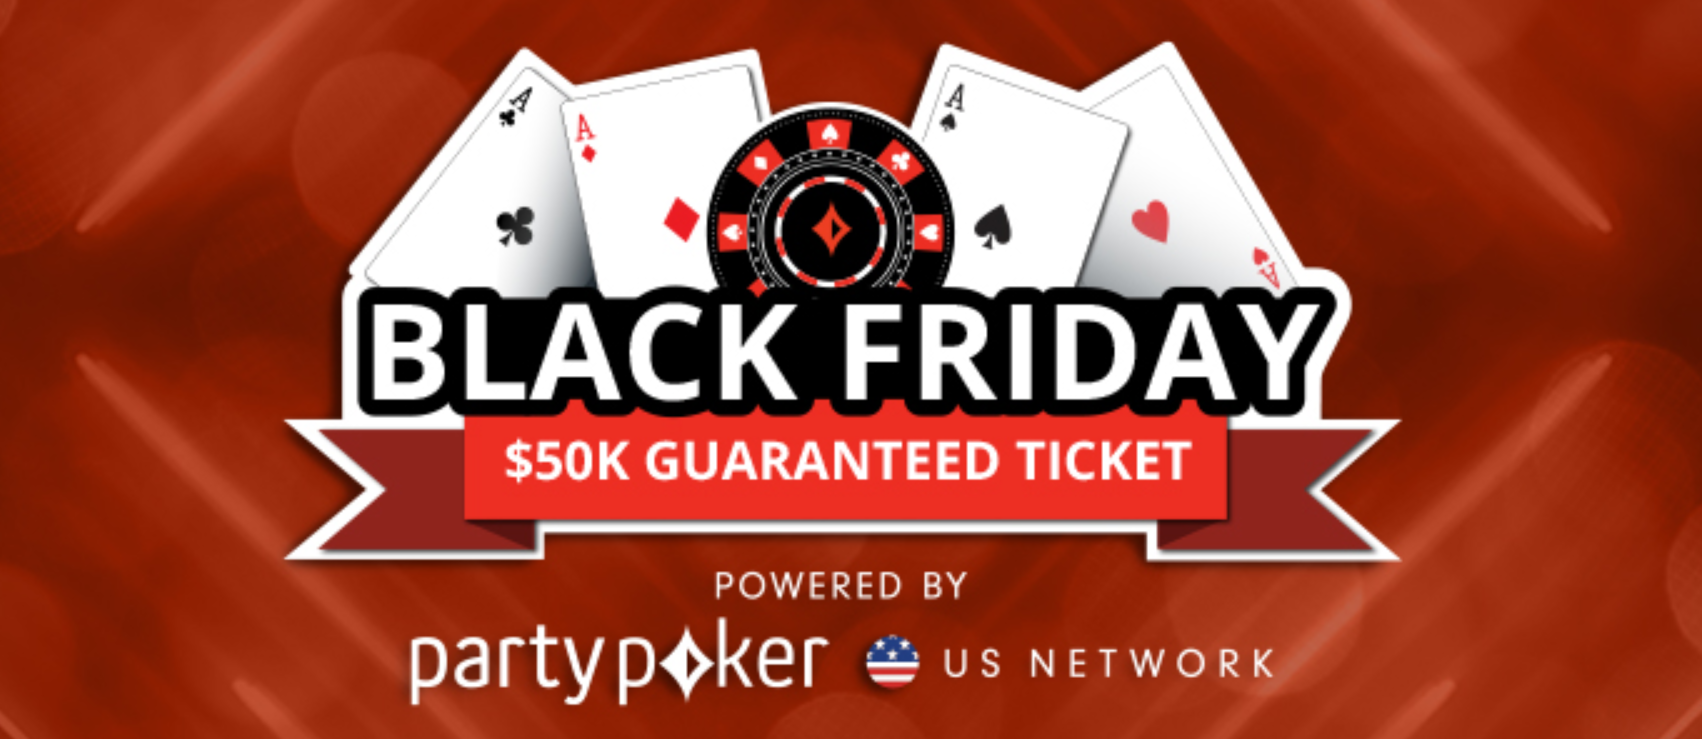 Get Free Entry Into The 50 000 Guaranteed Black Friday Tournament On Partypoker Us